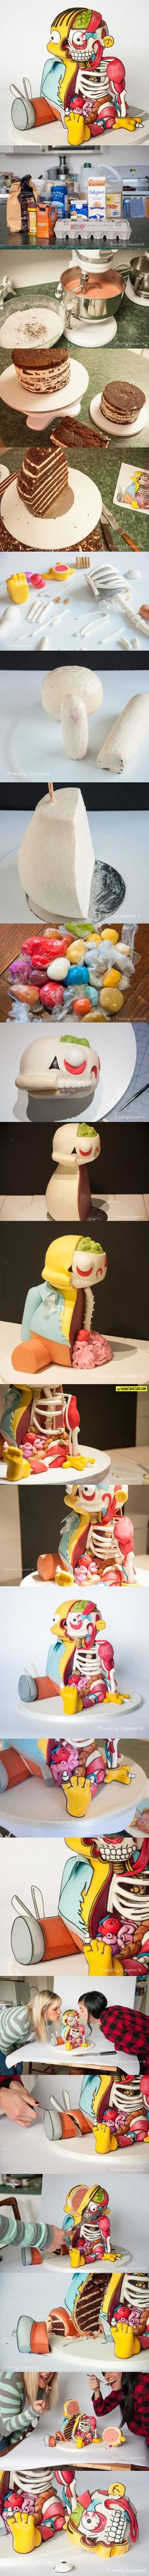 Looks so unreal! Ralph Wiggum Cut-Out Cake #simpsons